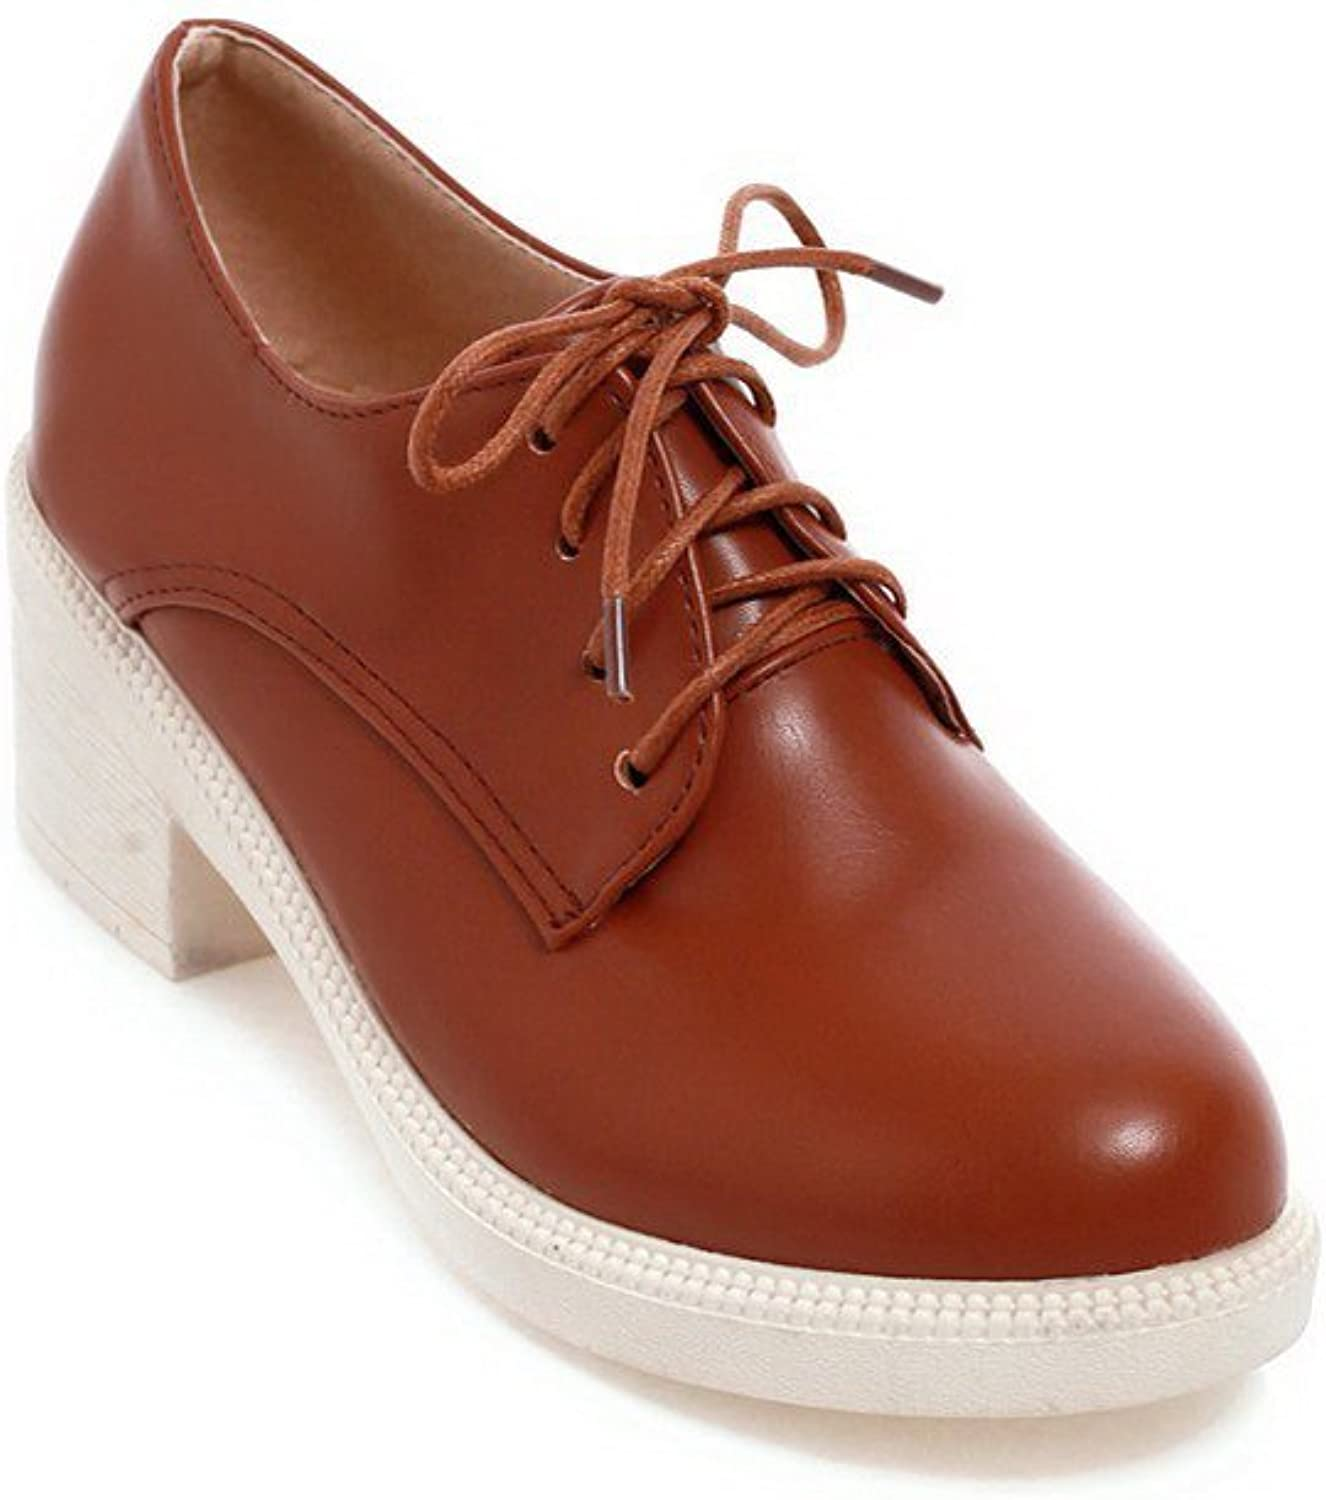 AllhqFashion Women's Lace-up Kitten-Heels PU Solid Round Closed Toe Pumps-shoes with Knot